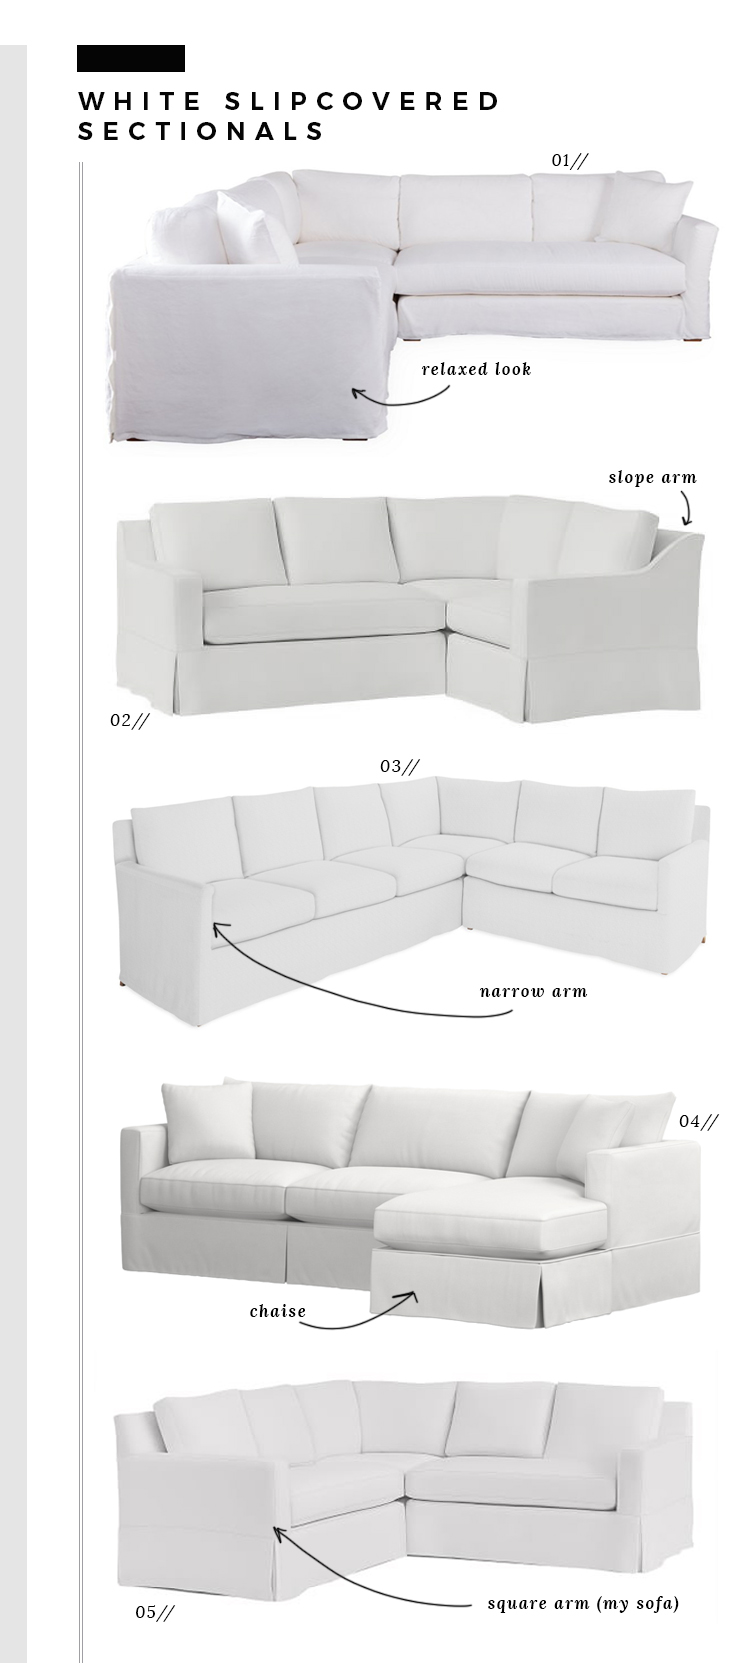 White Slipcover Sectionals